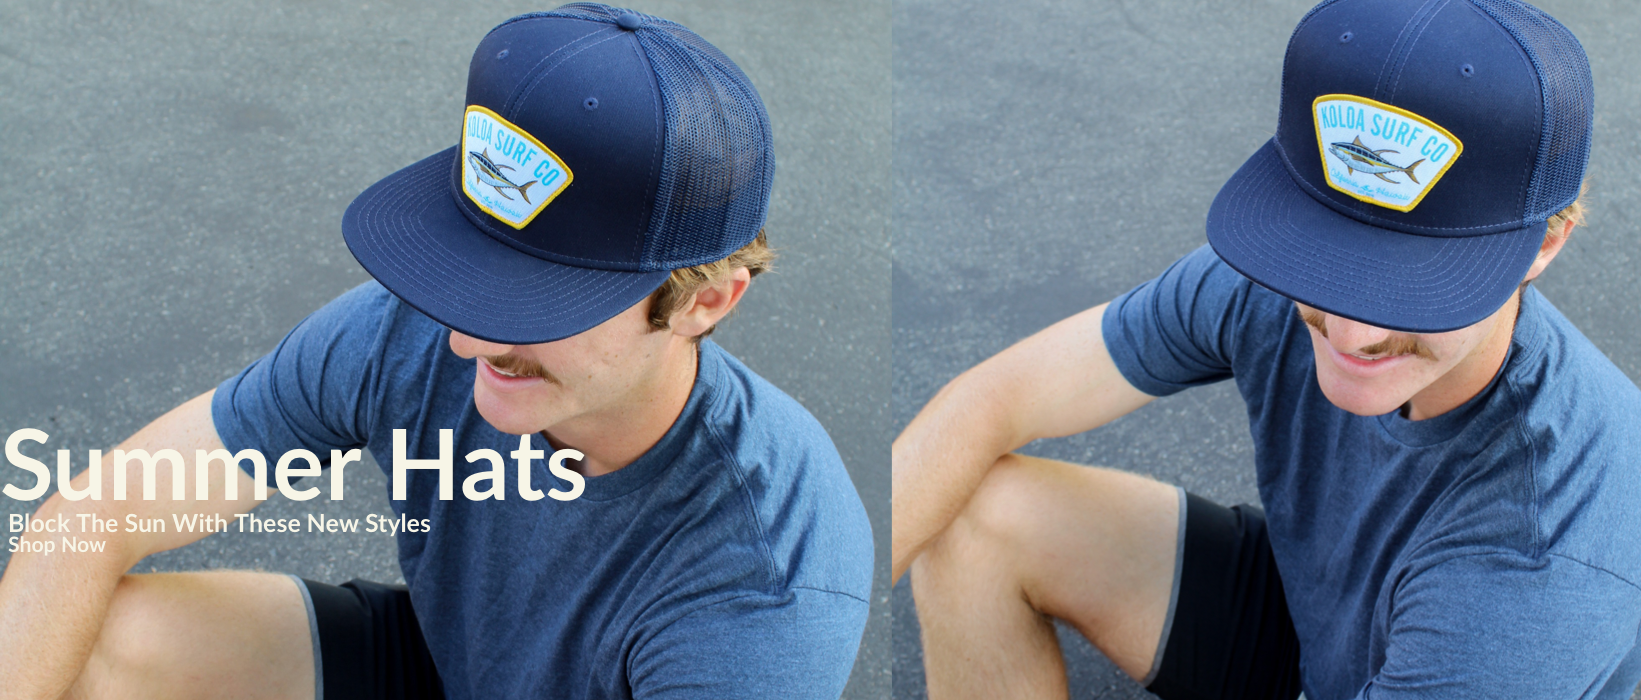 Summer Hats! Block the sun with these new styles. Shop now!